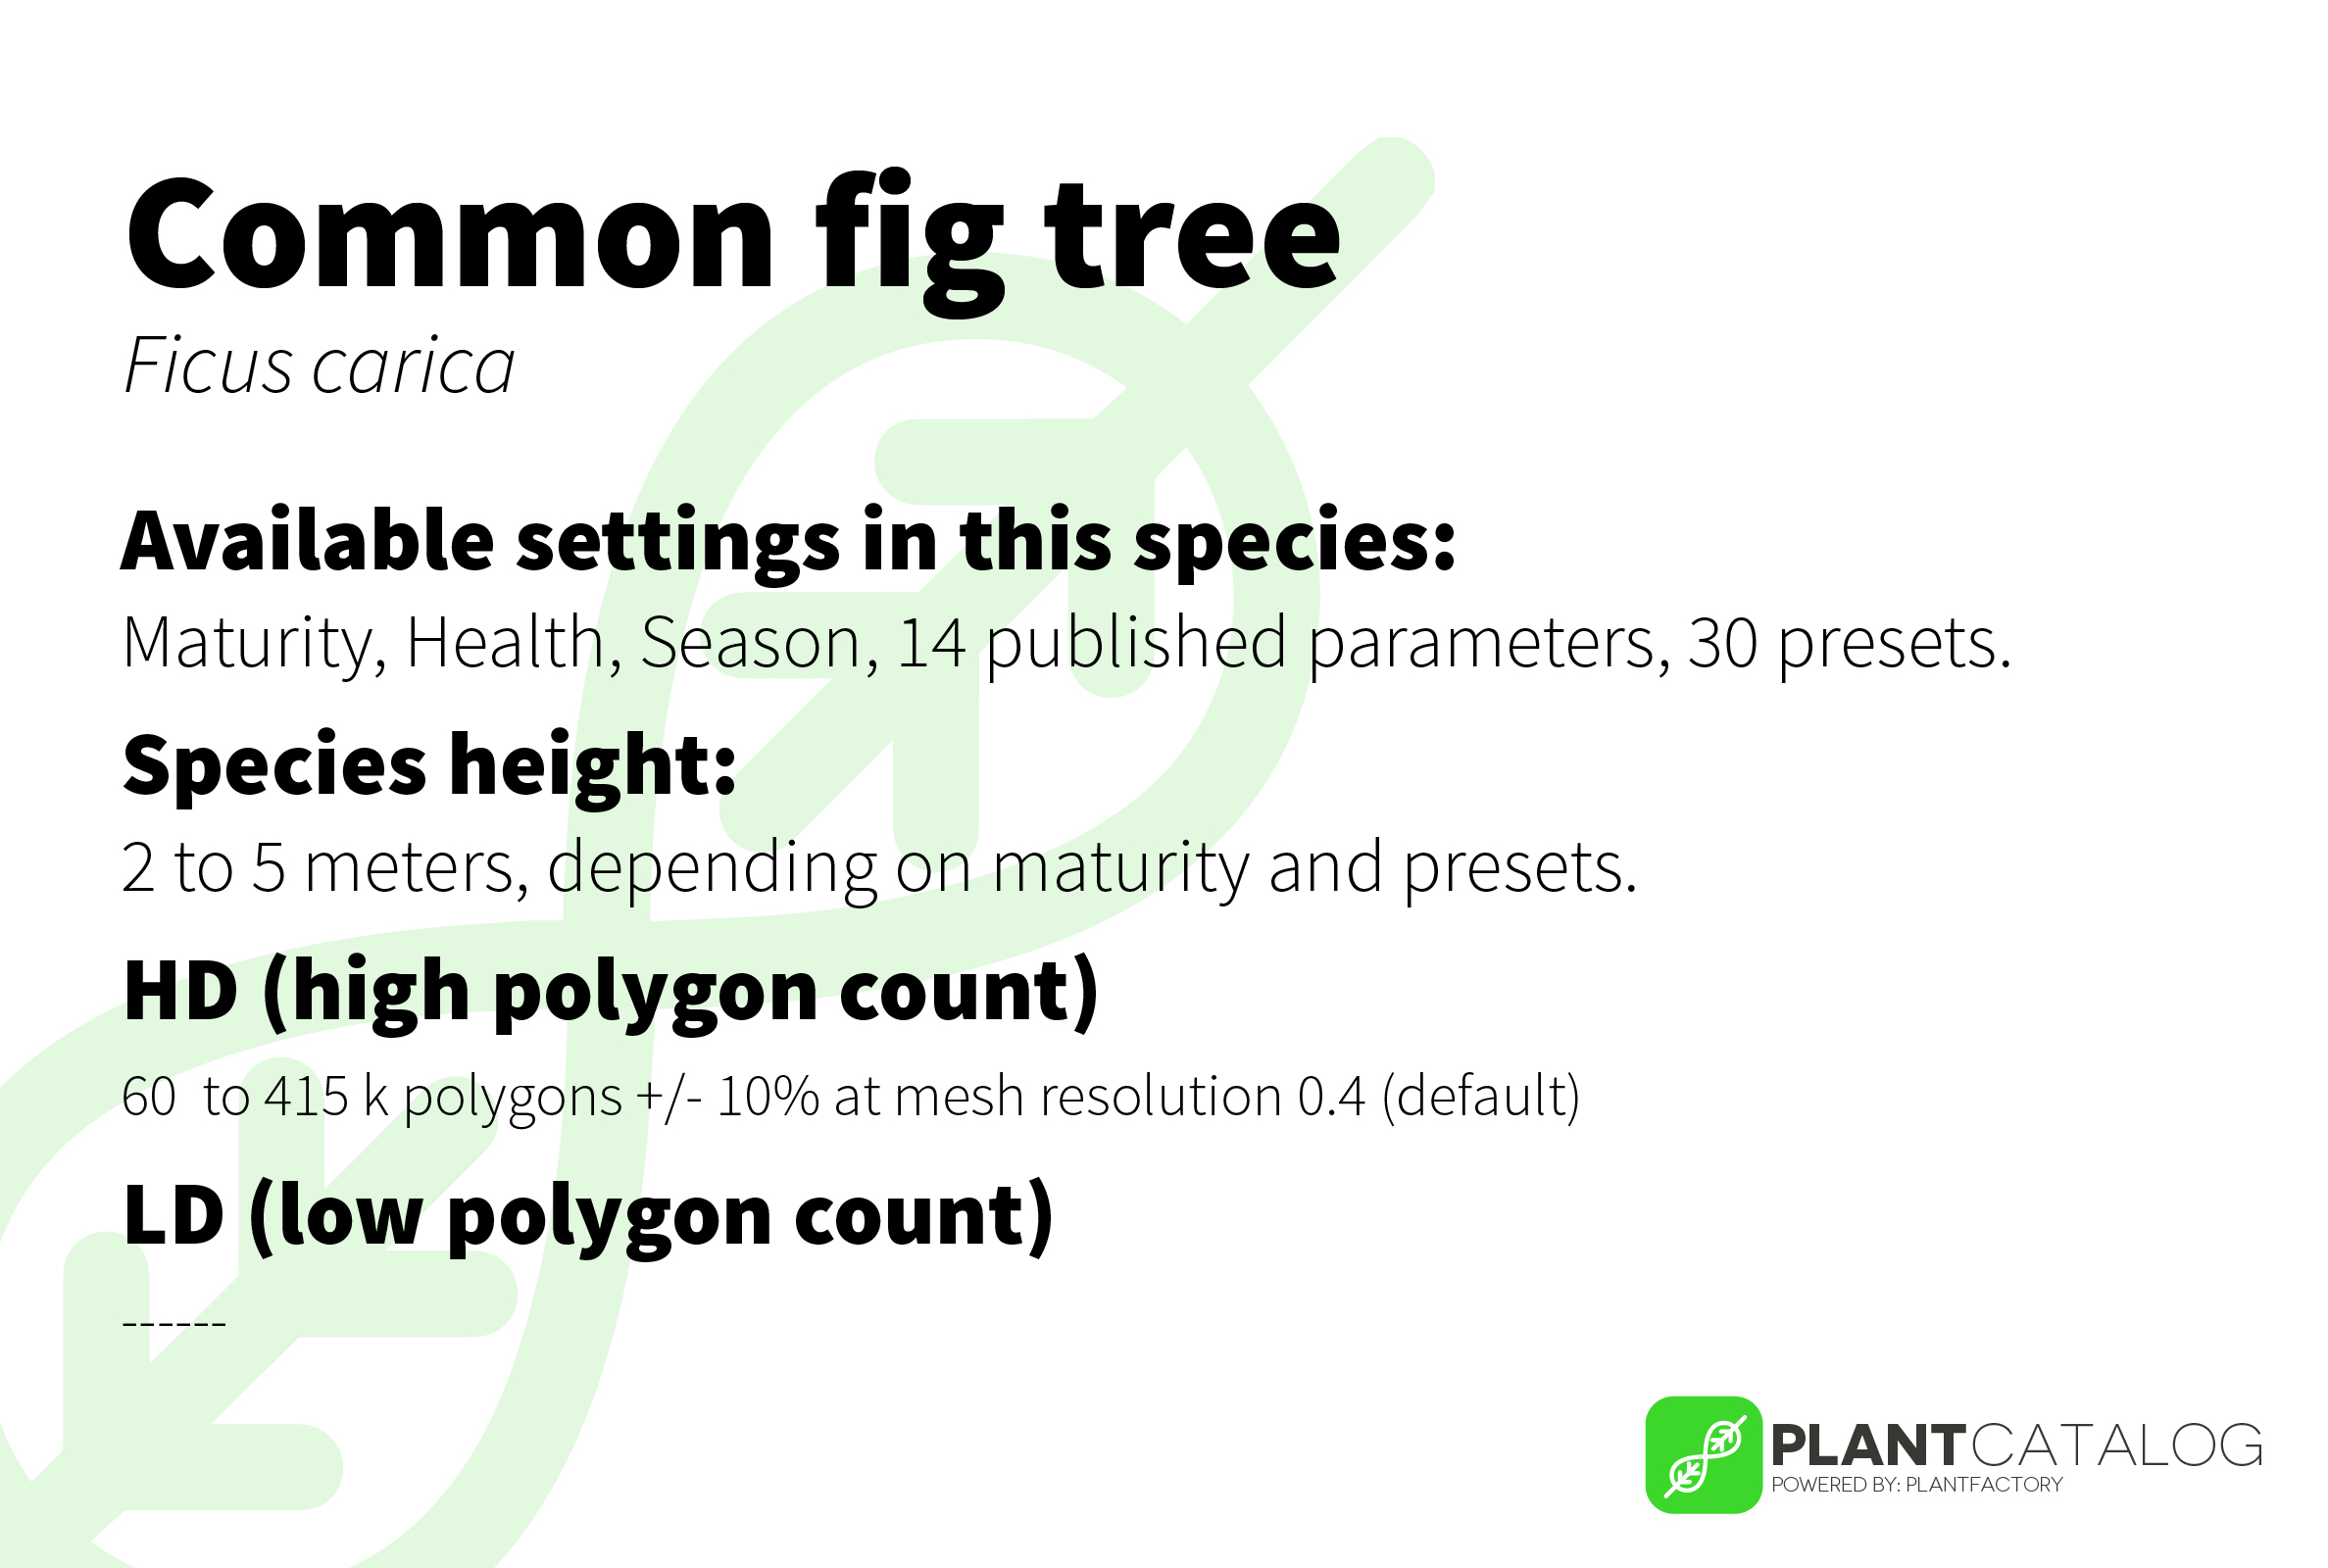 Common fig tree